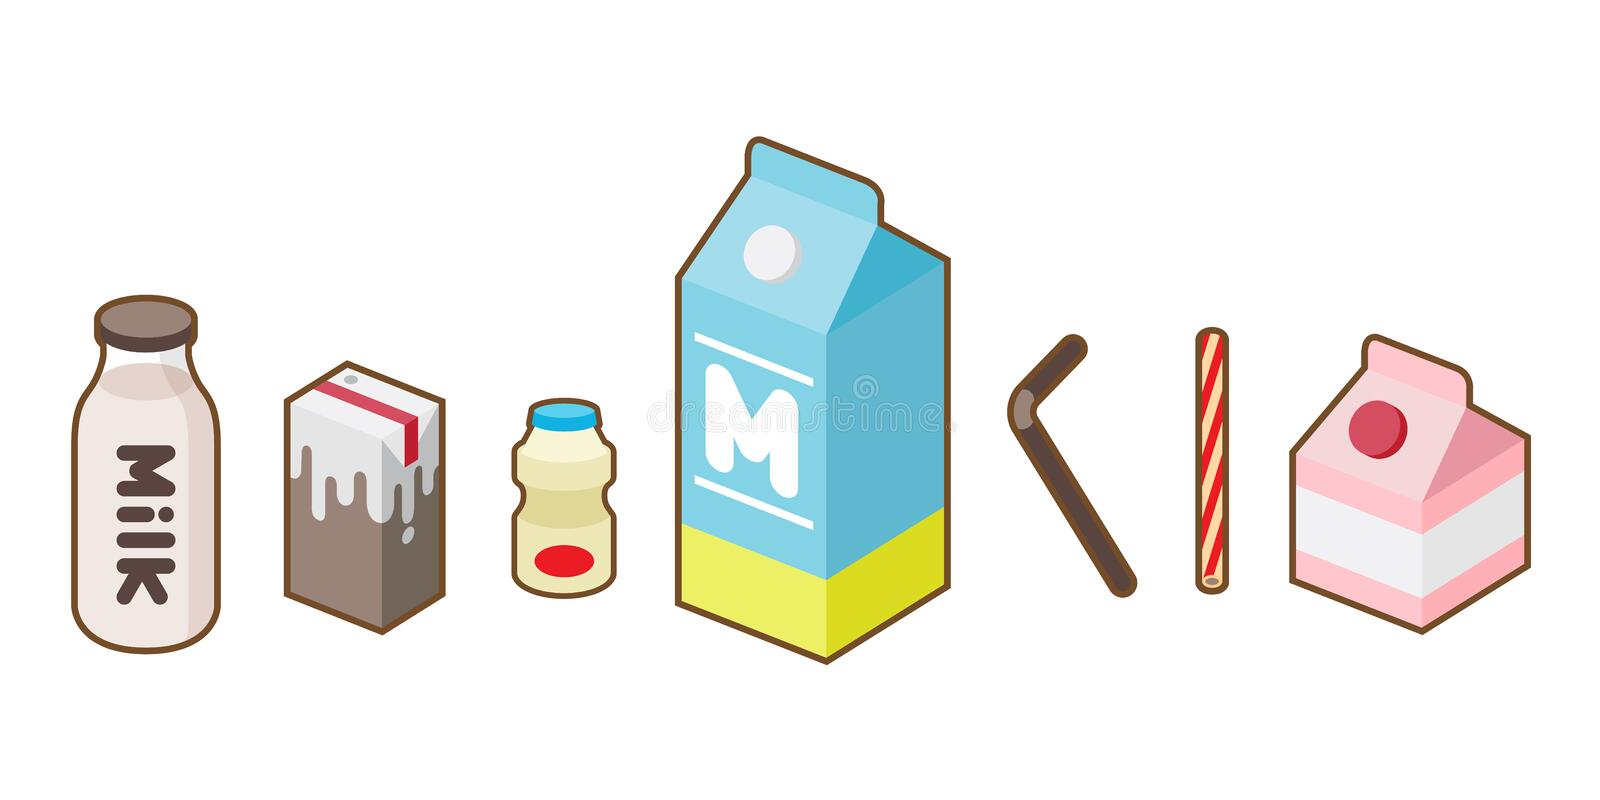 Milk yogurt juice bottle icon vector illustration package stock illustration